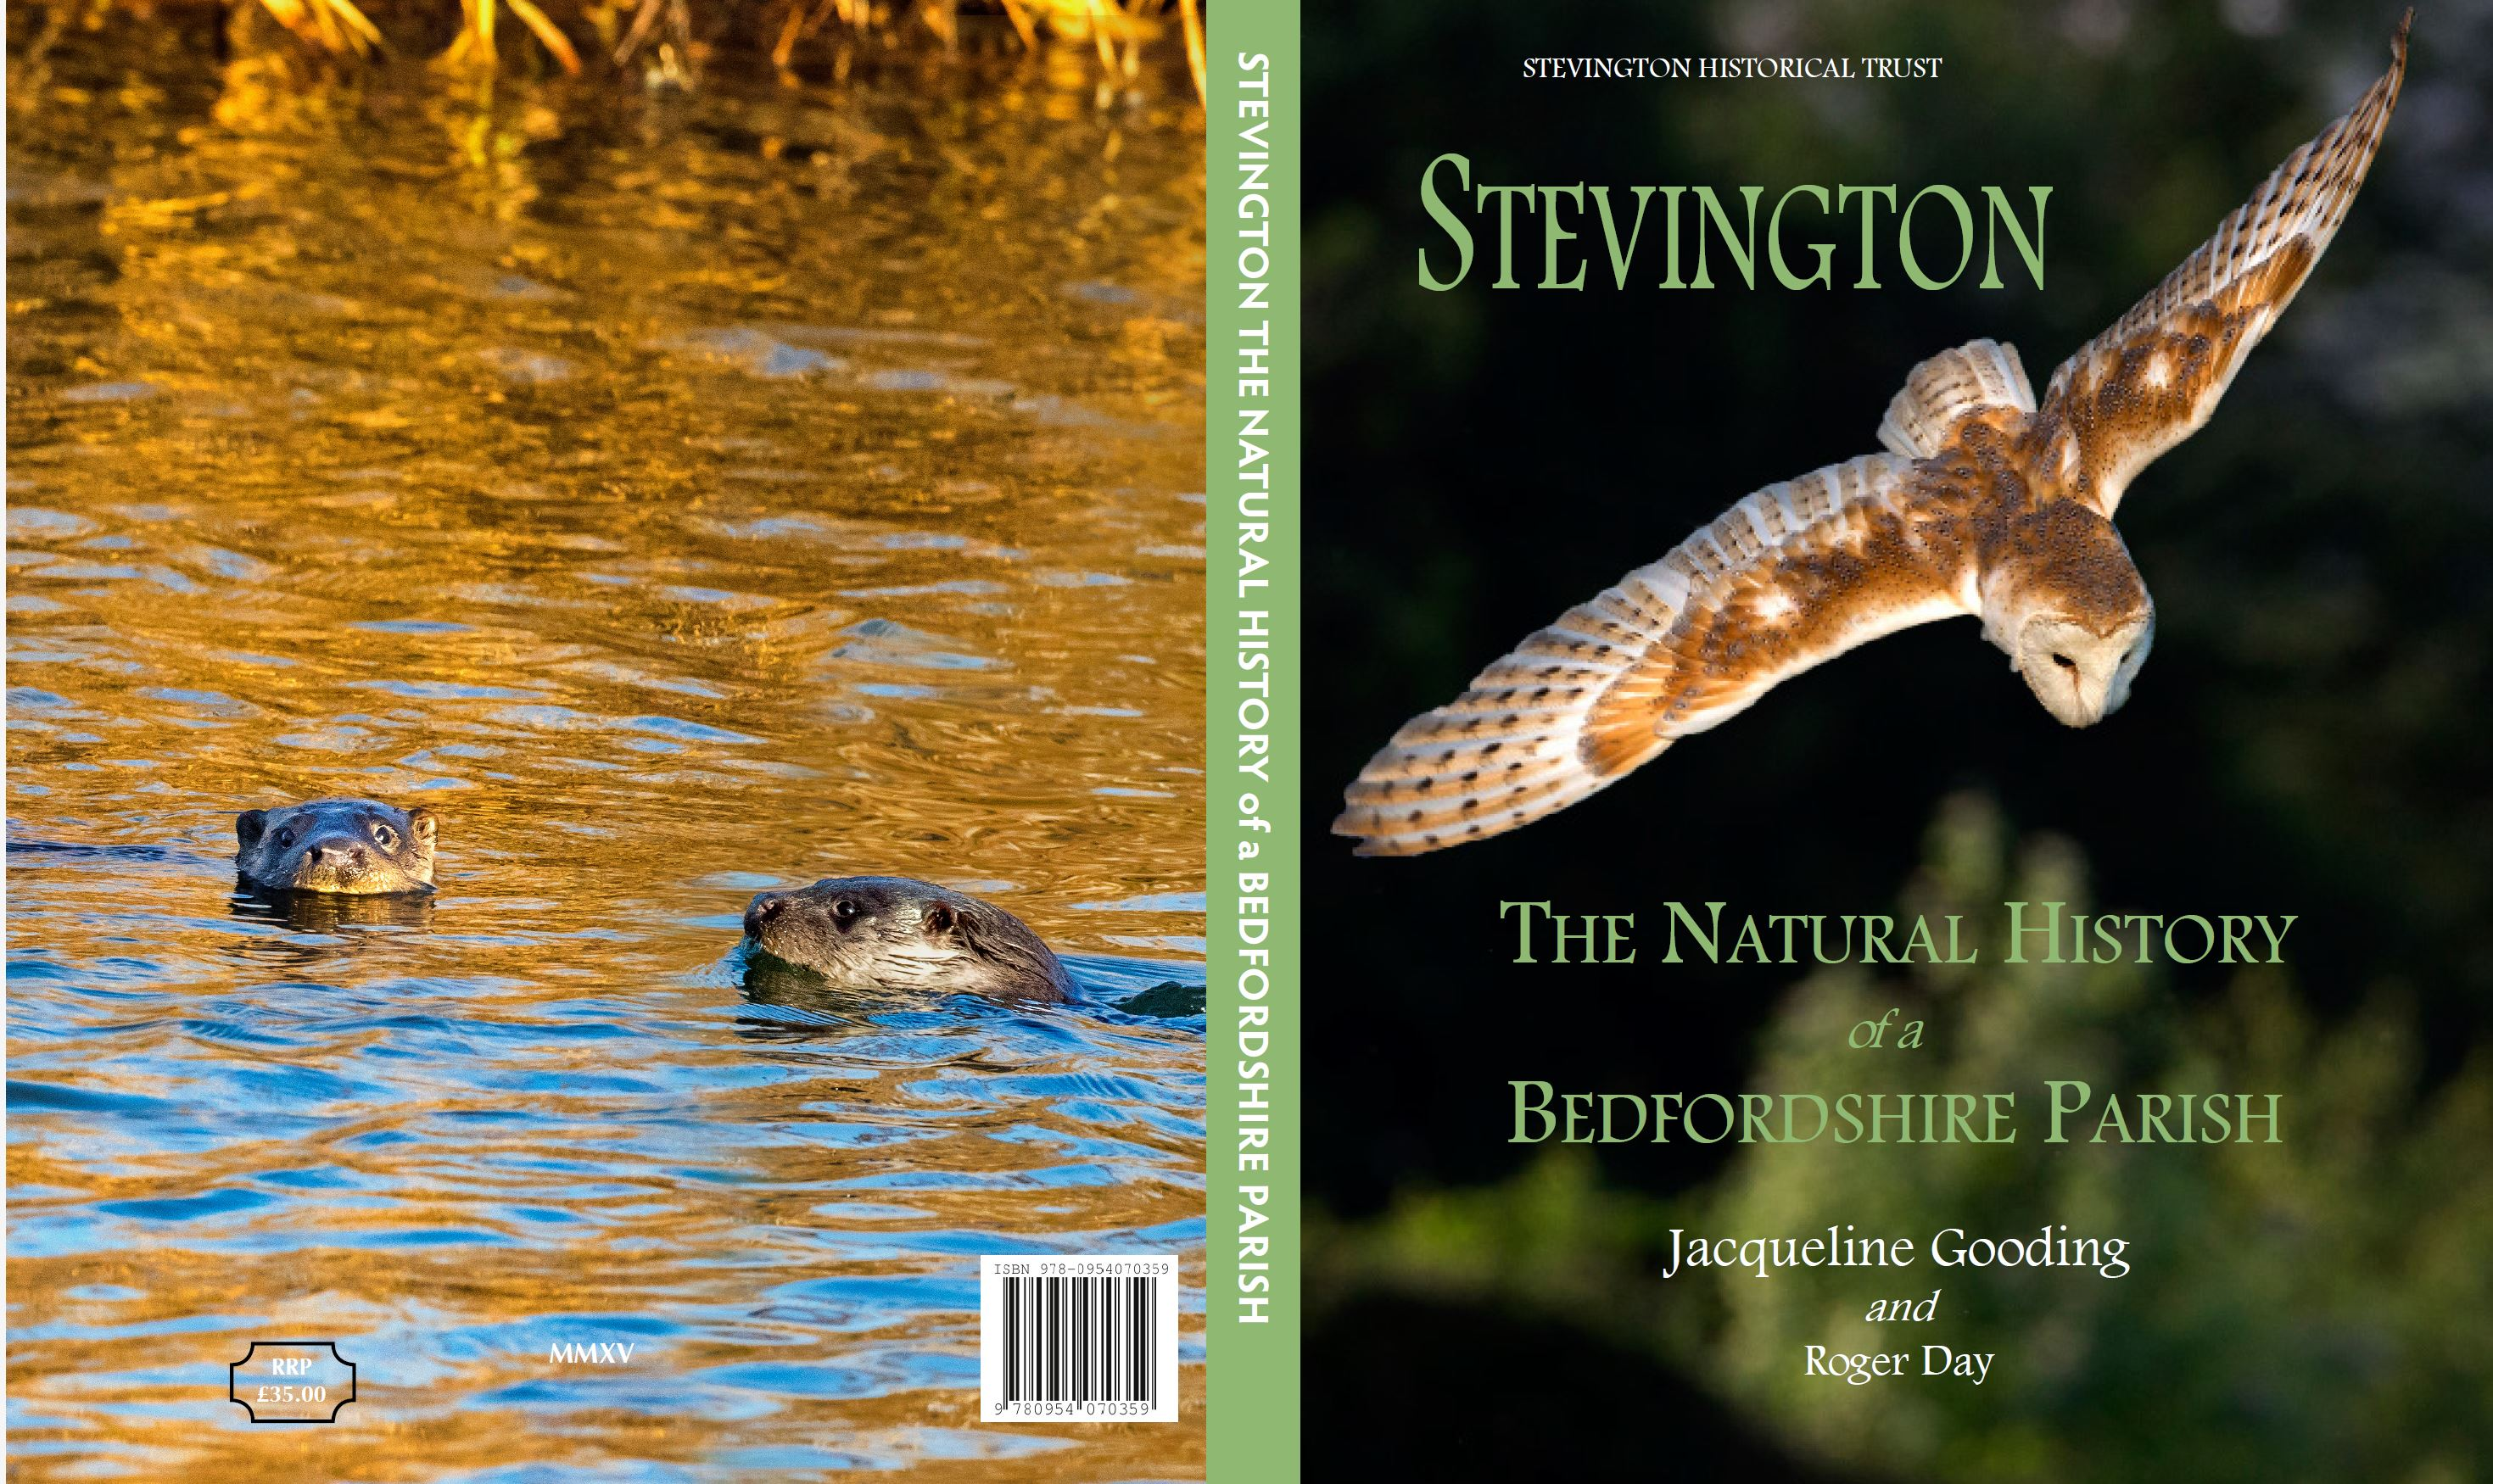 stevington-book-cover-snh-16-nov